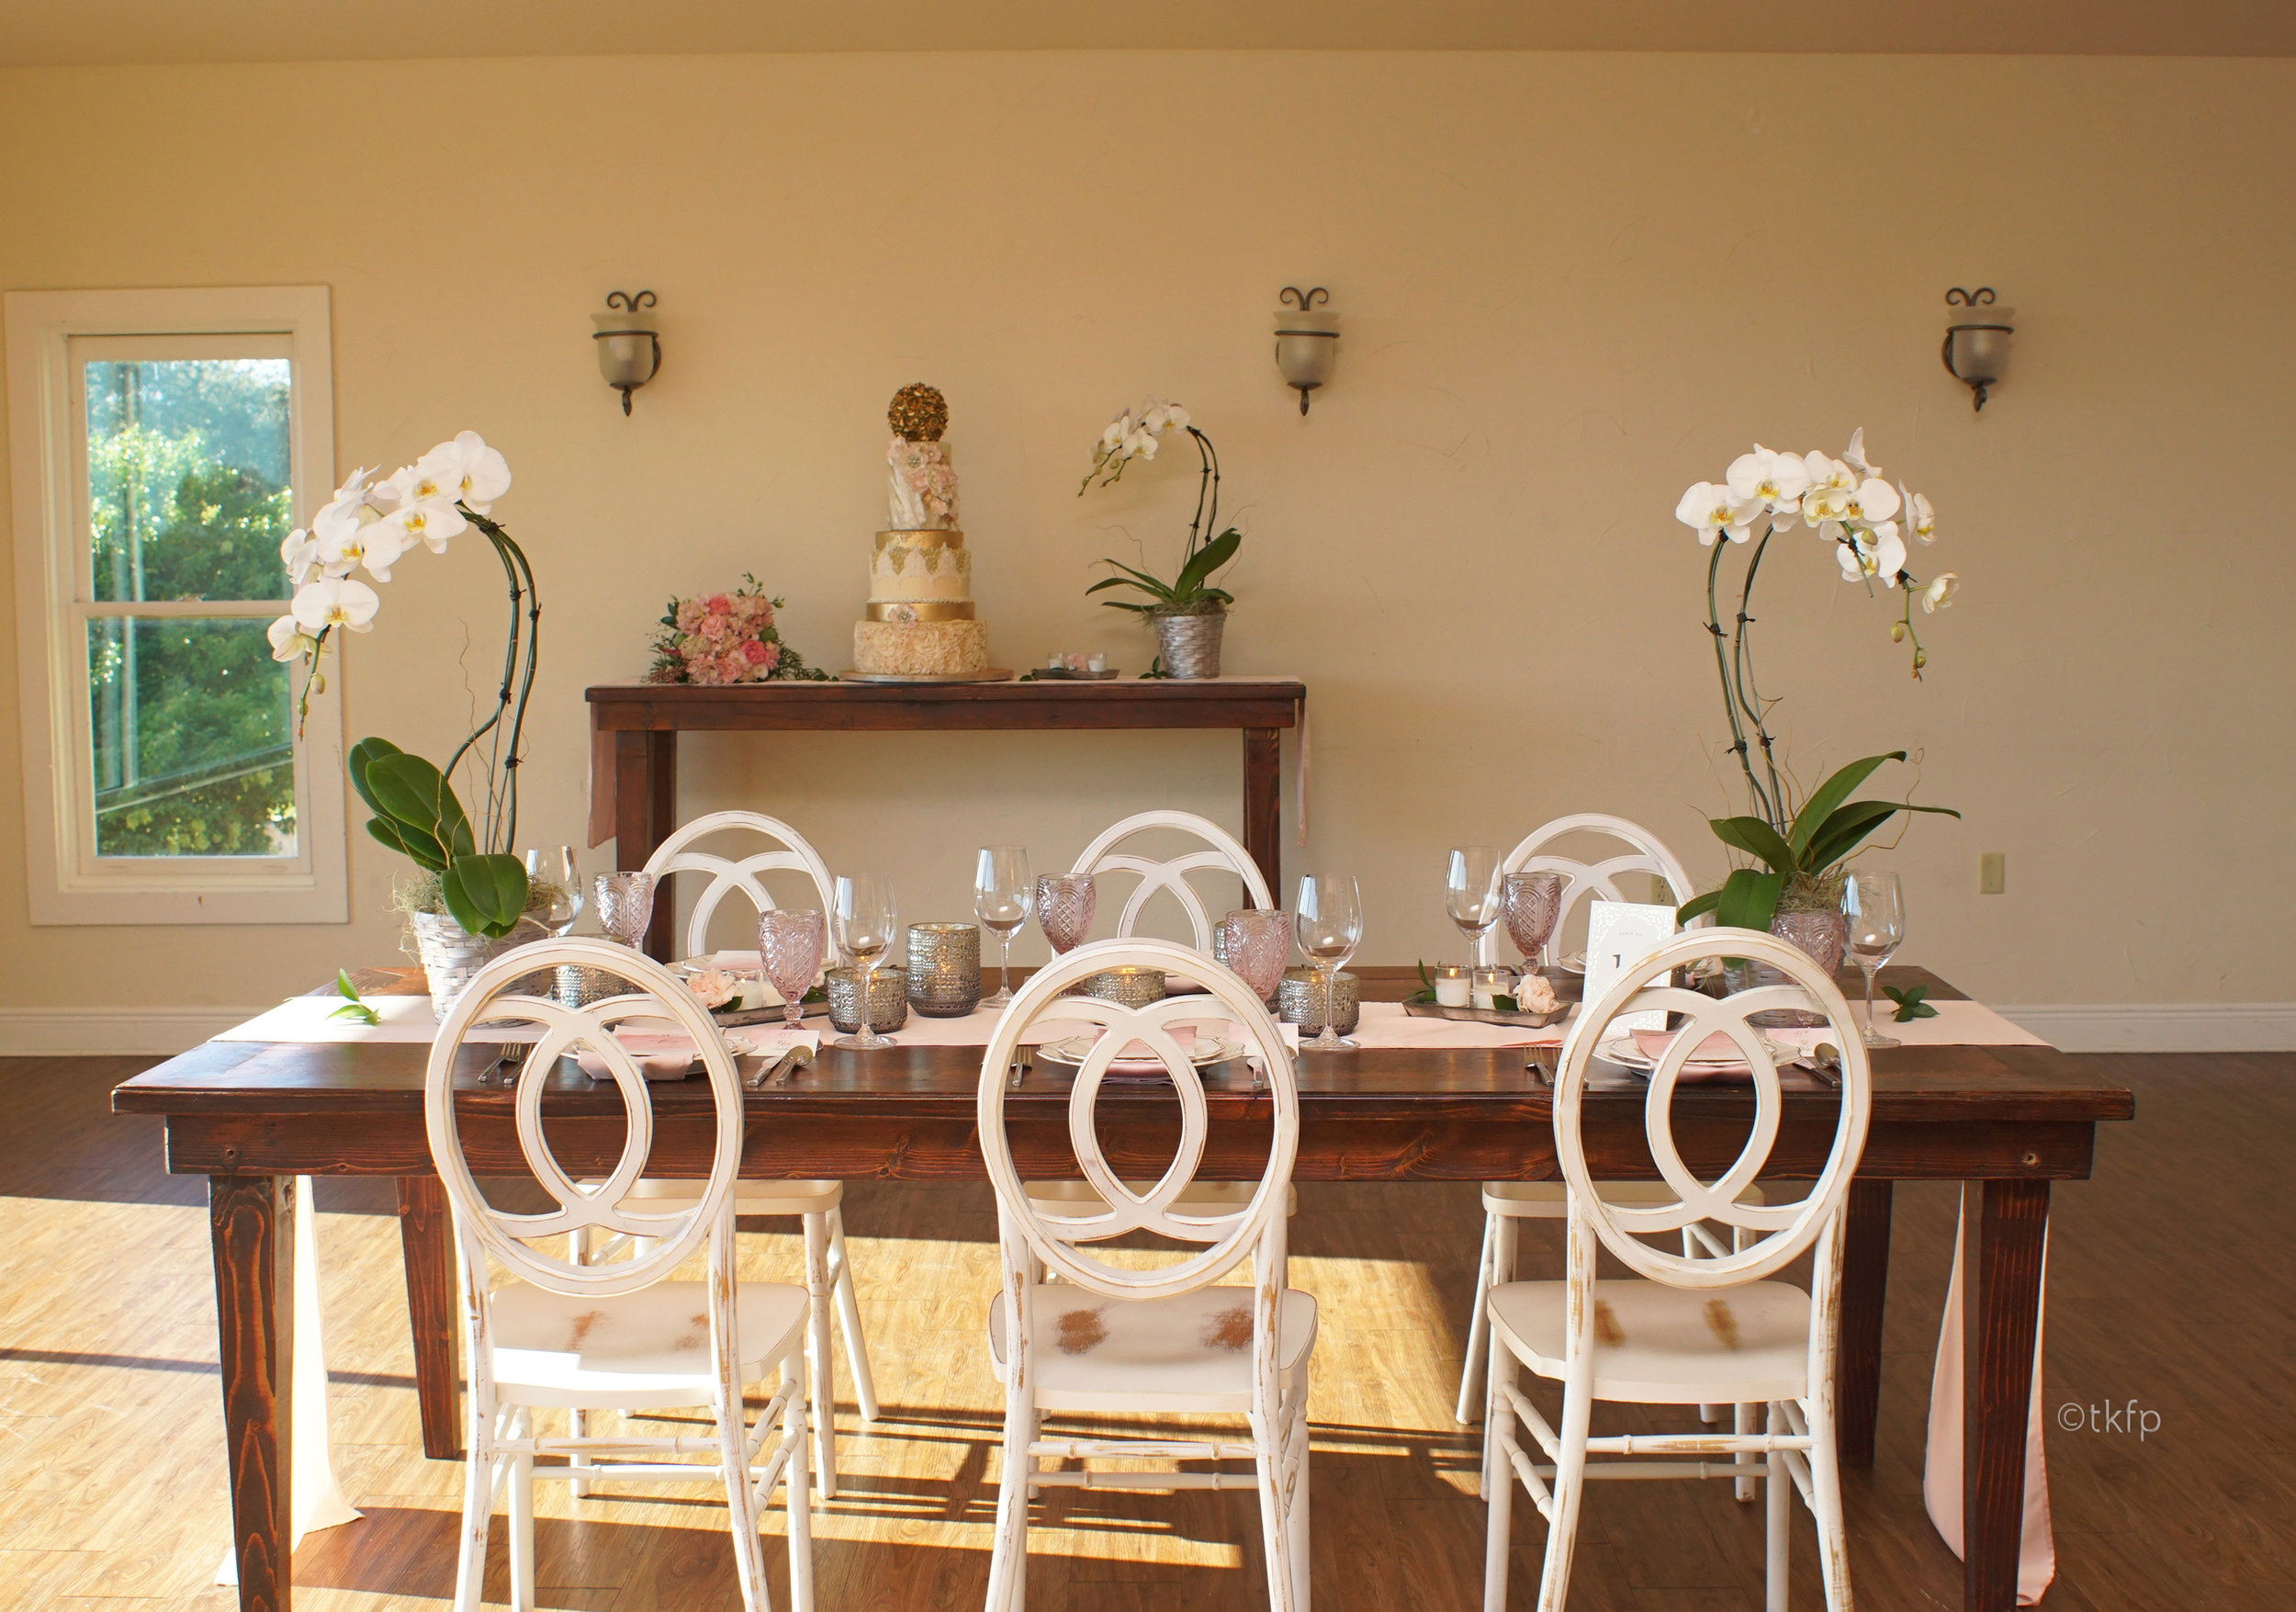 Antique White Chairs with Vineyard table